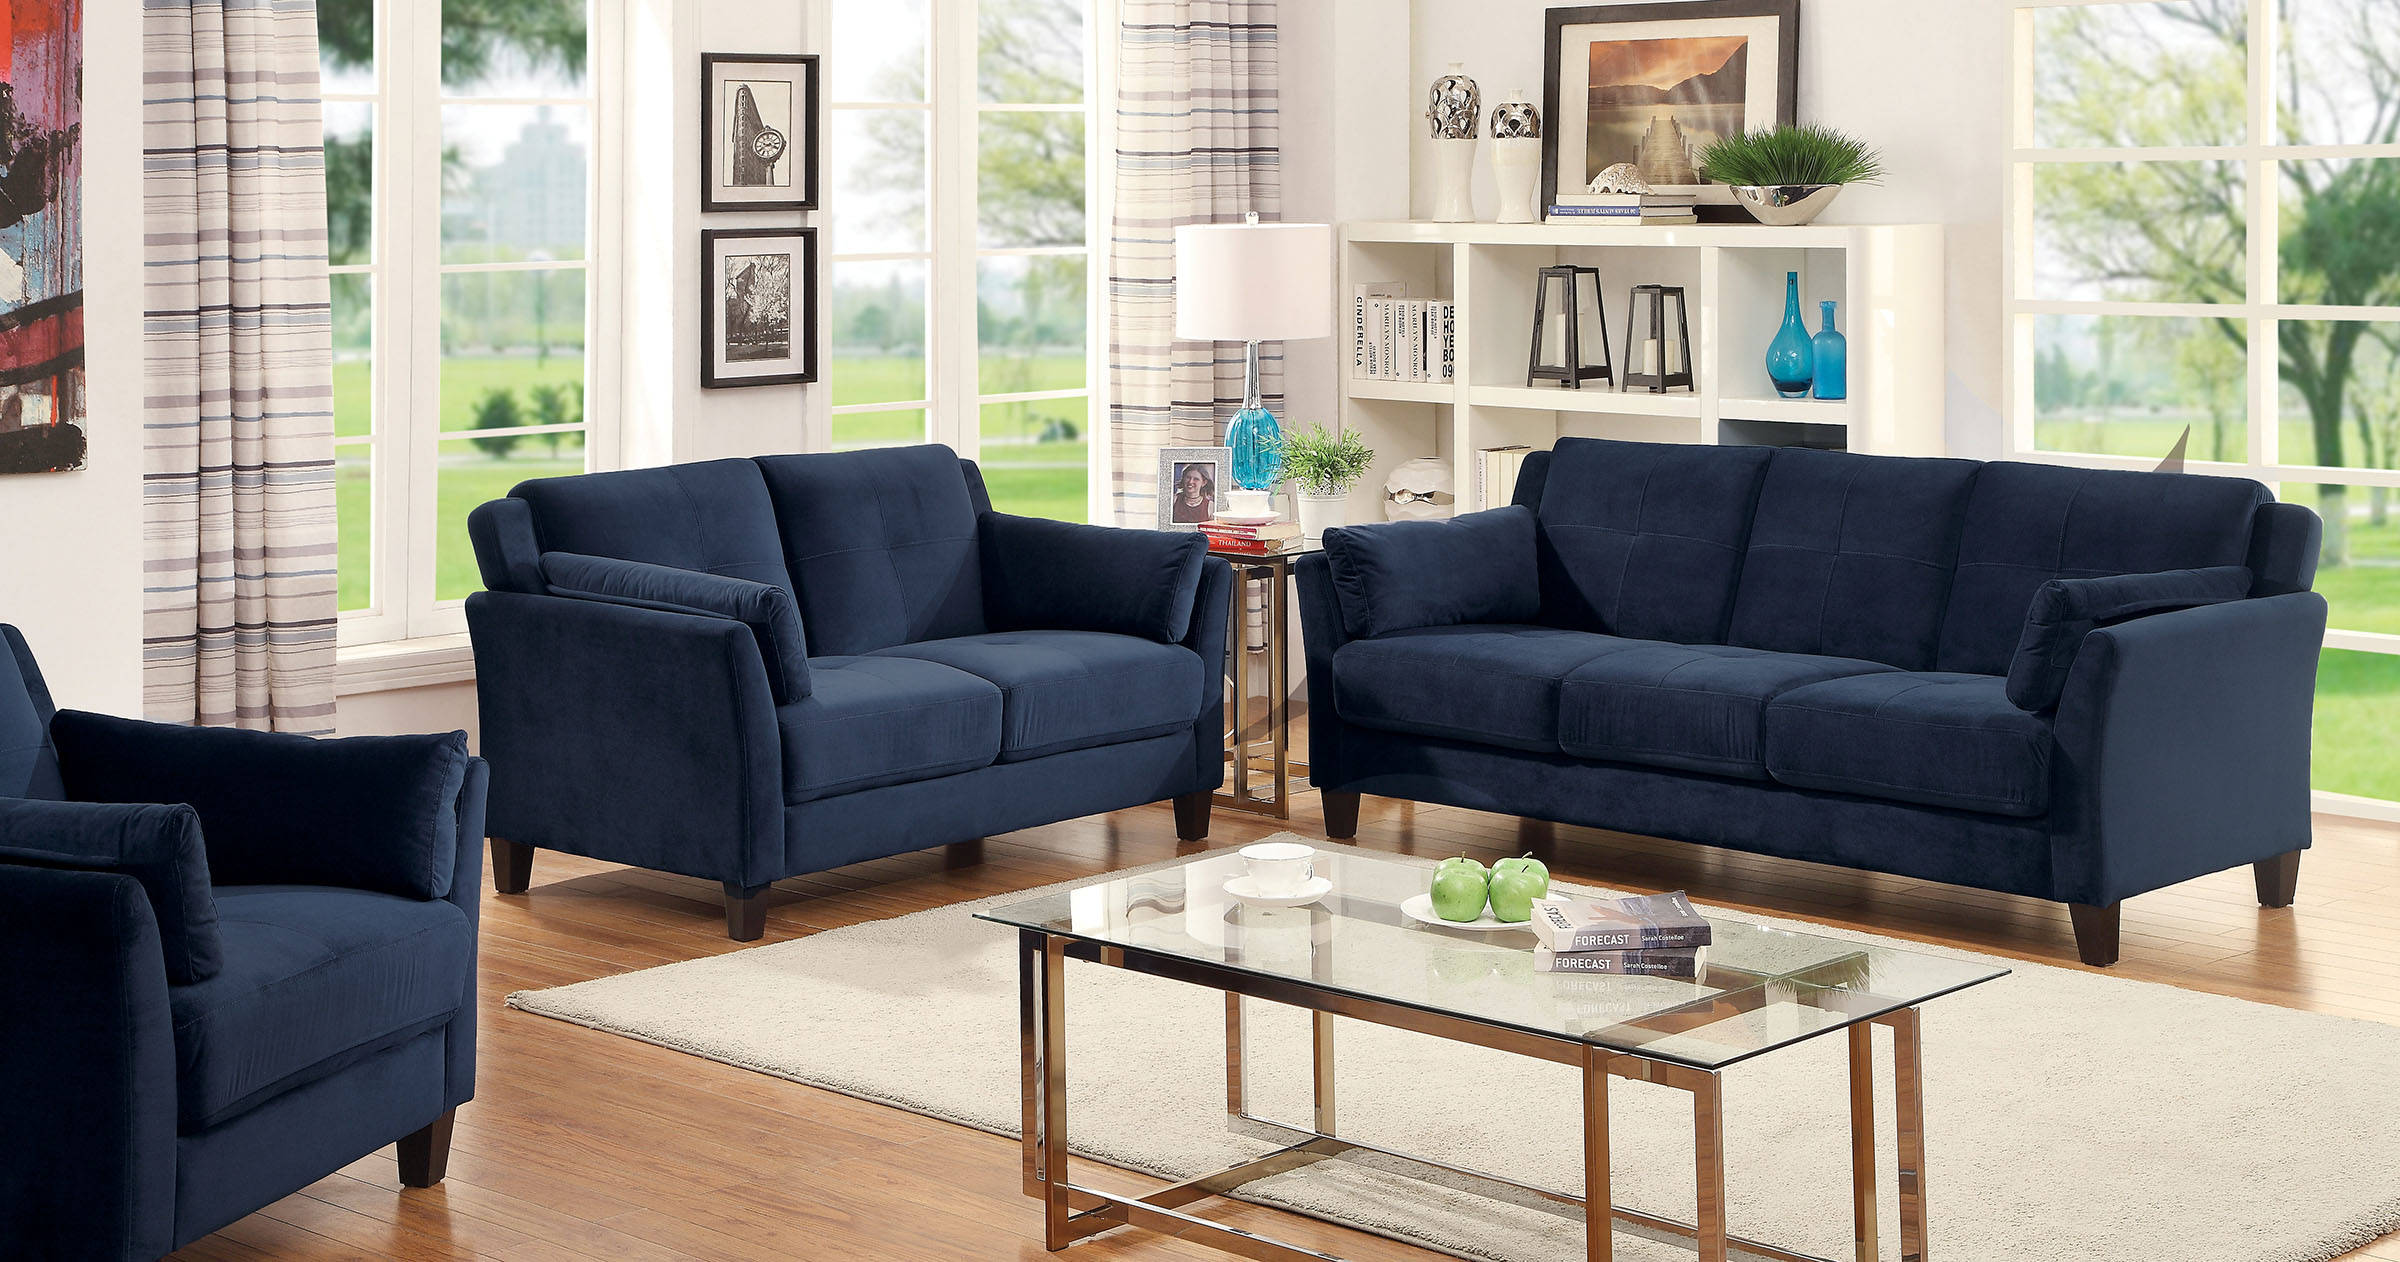 Add Charm Living Room Sets ... Living Room Set Click To Enlarge ...